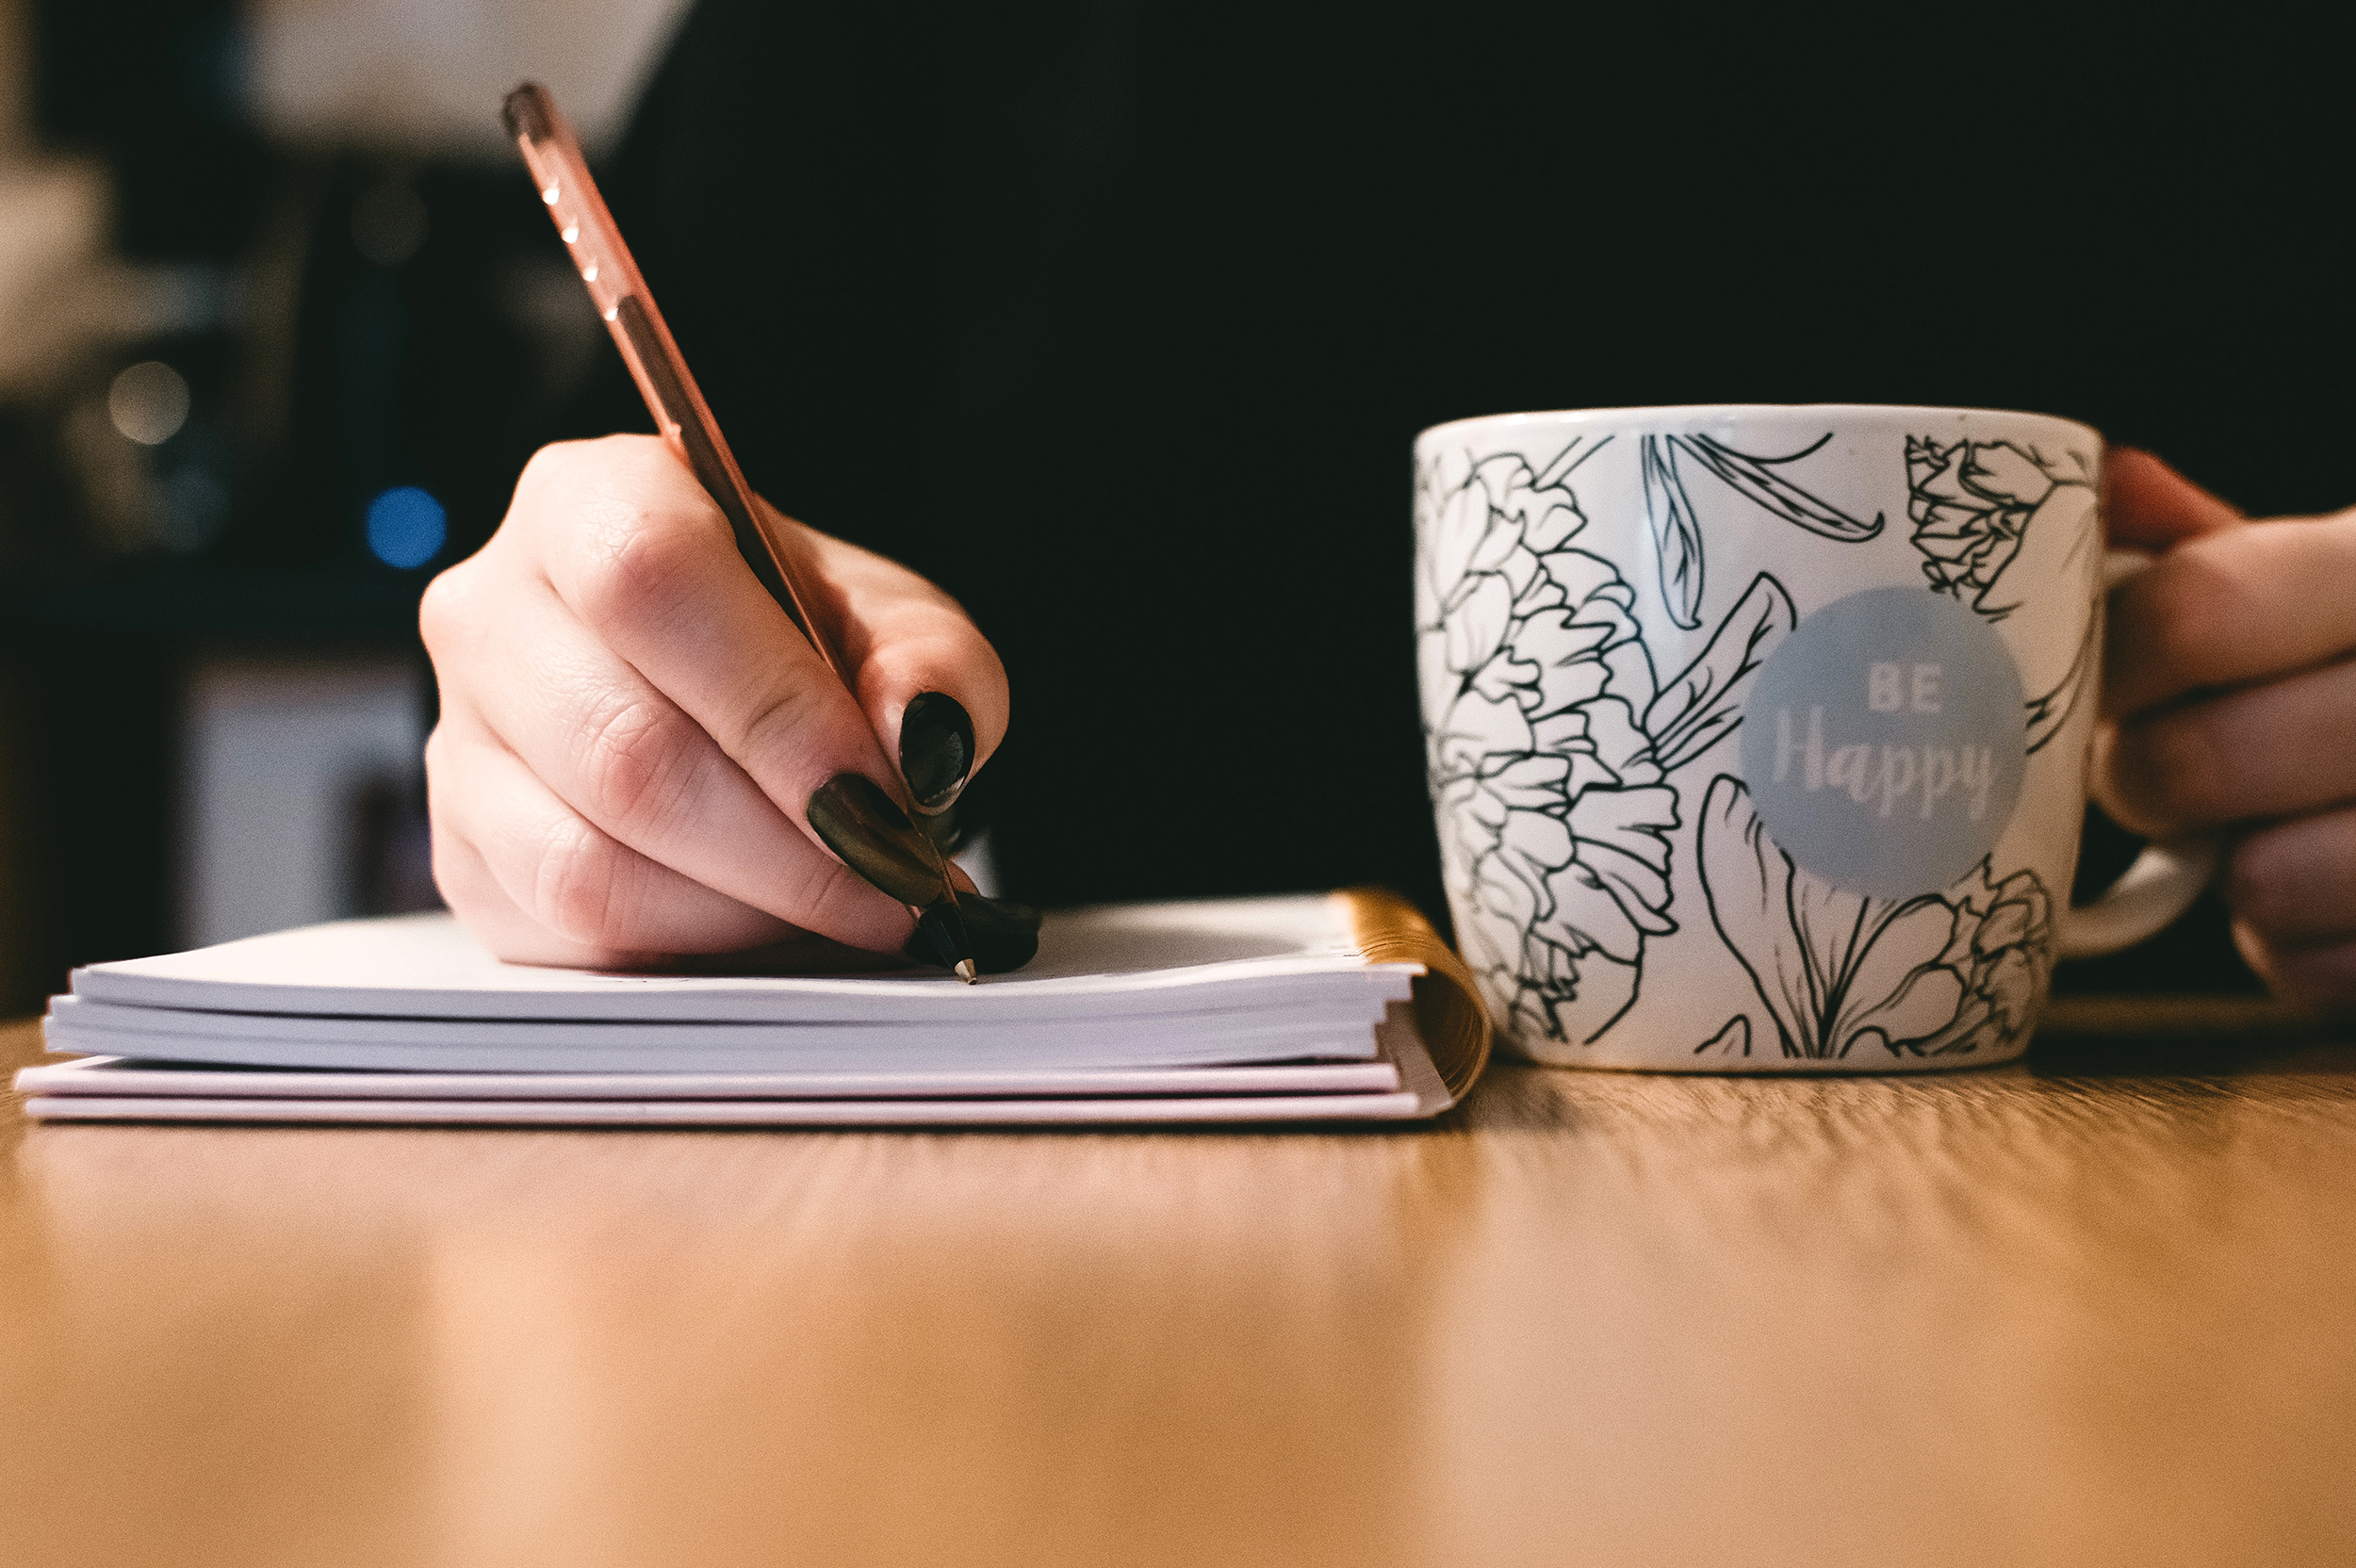 One hand writes in notebook while the other holds a coffee mug.